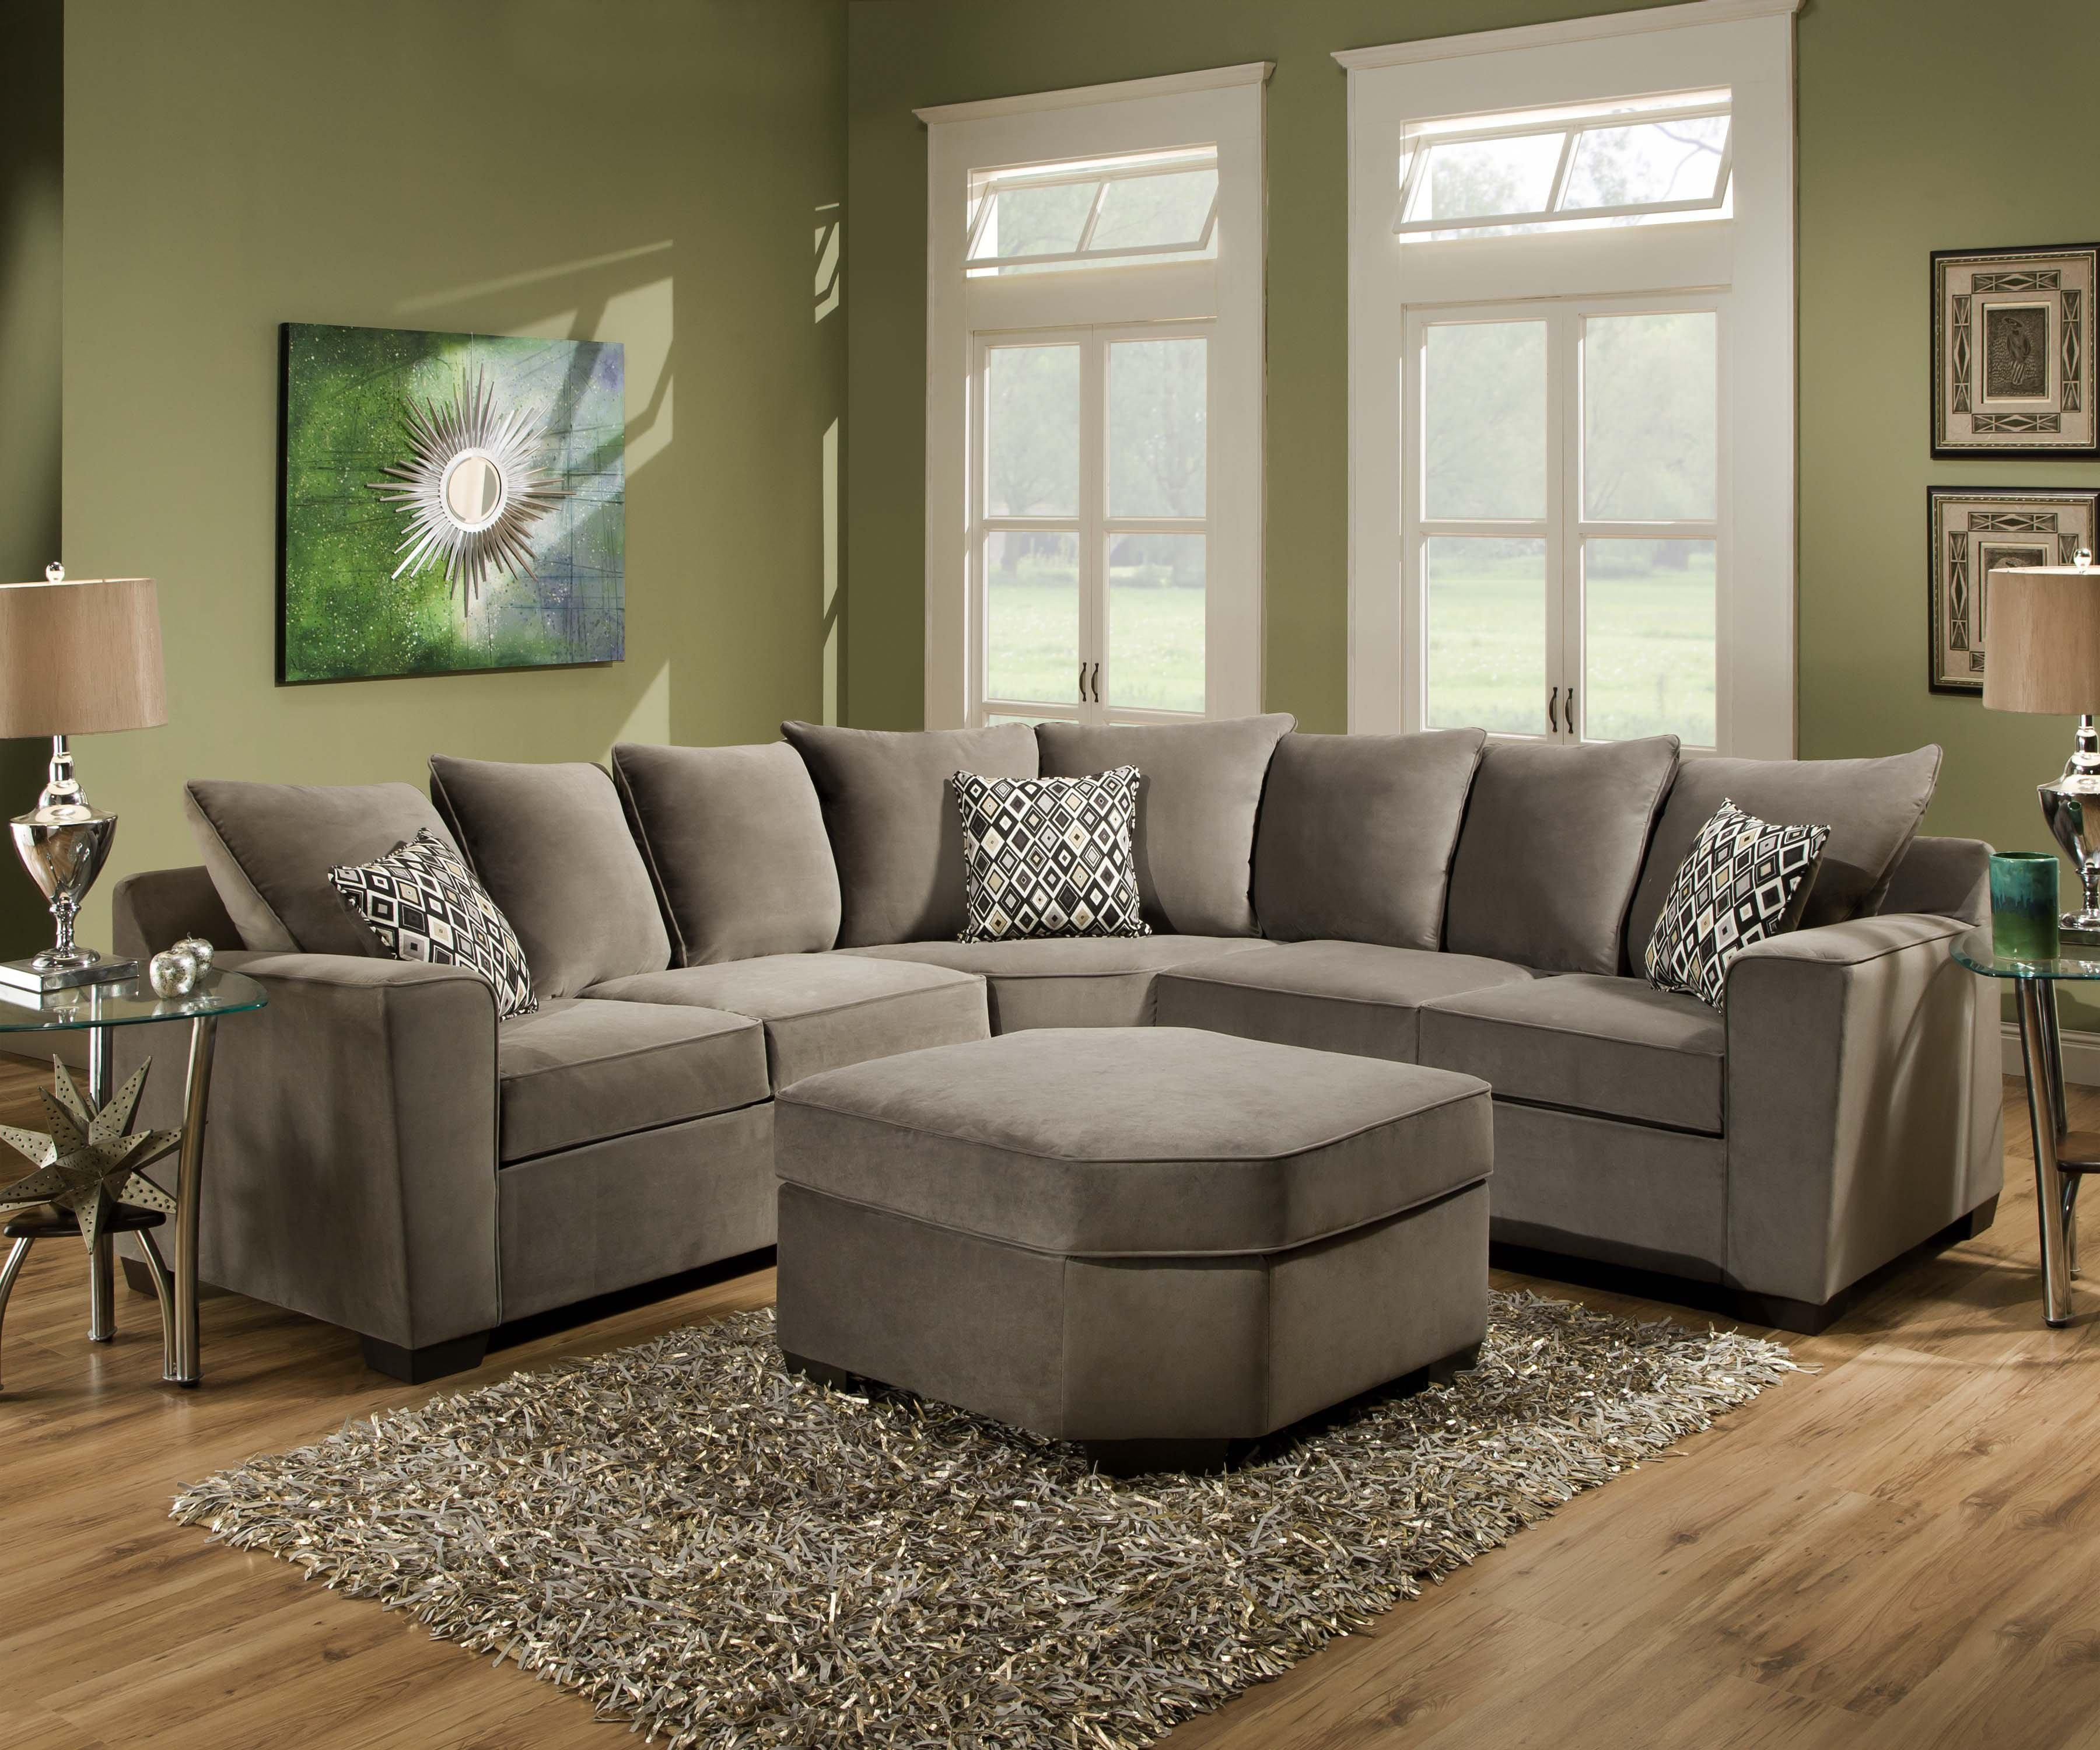 United Furniture Industries 9070 Transitional 2 Piece Sectional